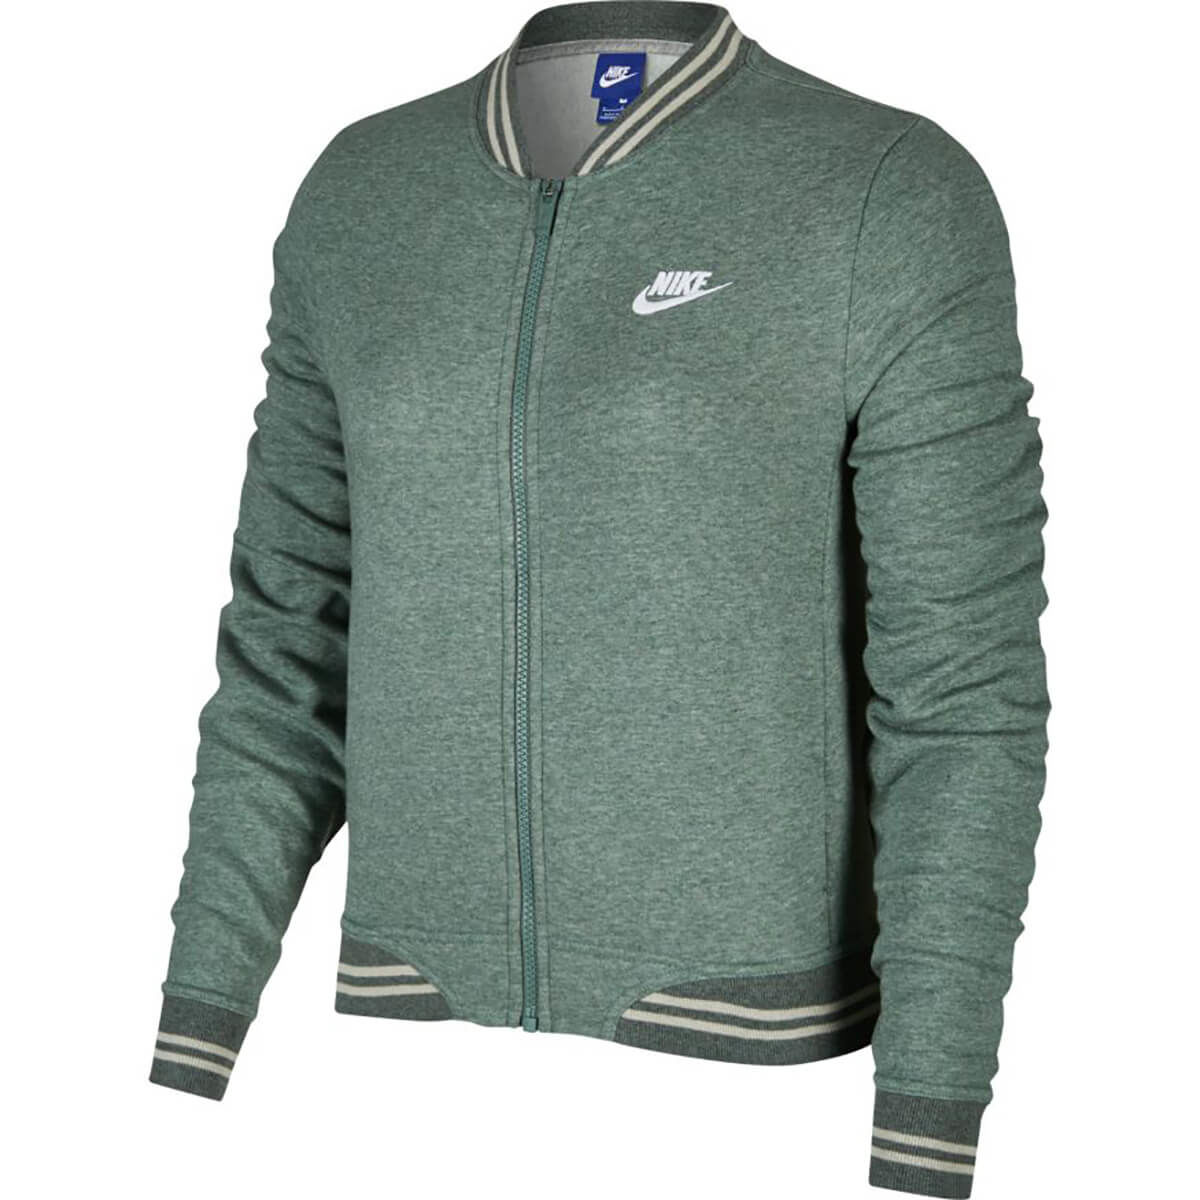 Nike Sportswear Womens Fleece Jacket | Modell's Sporting Goods